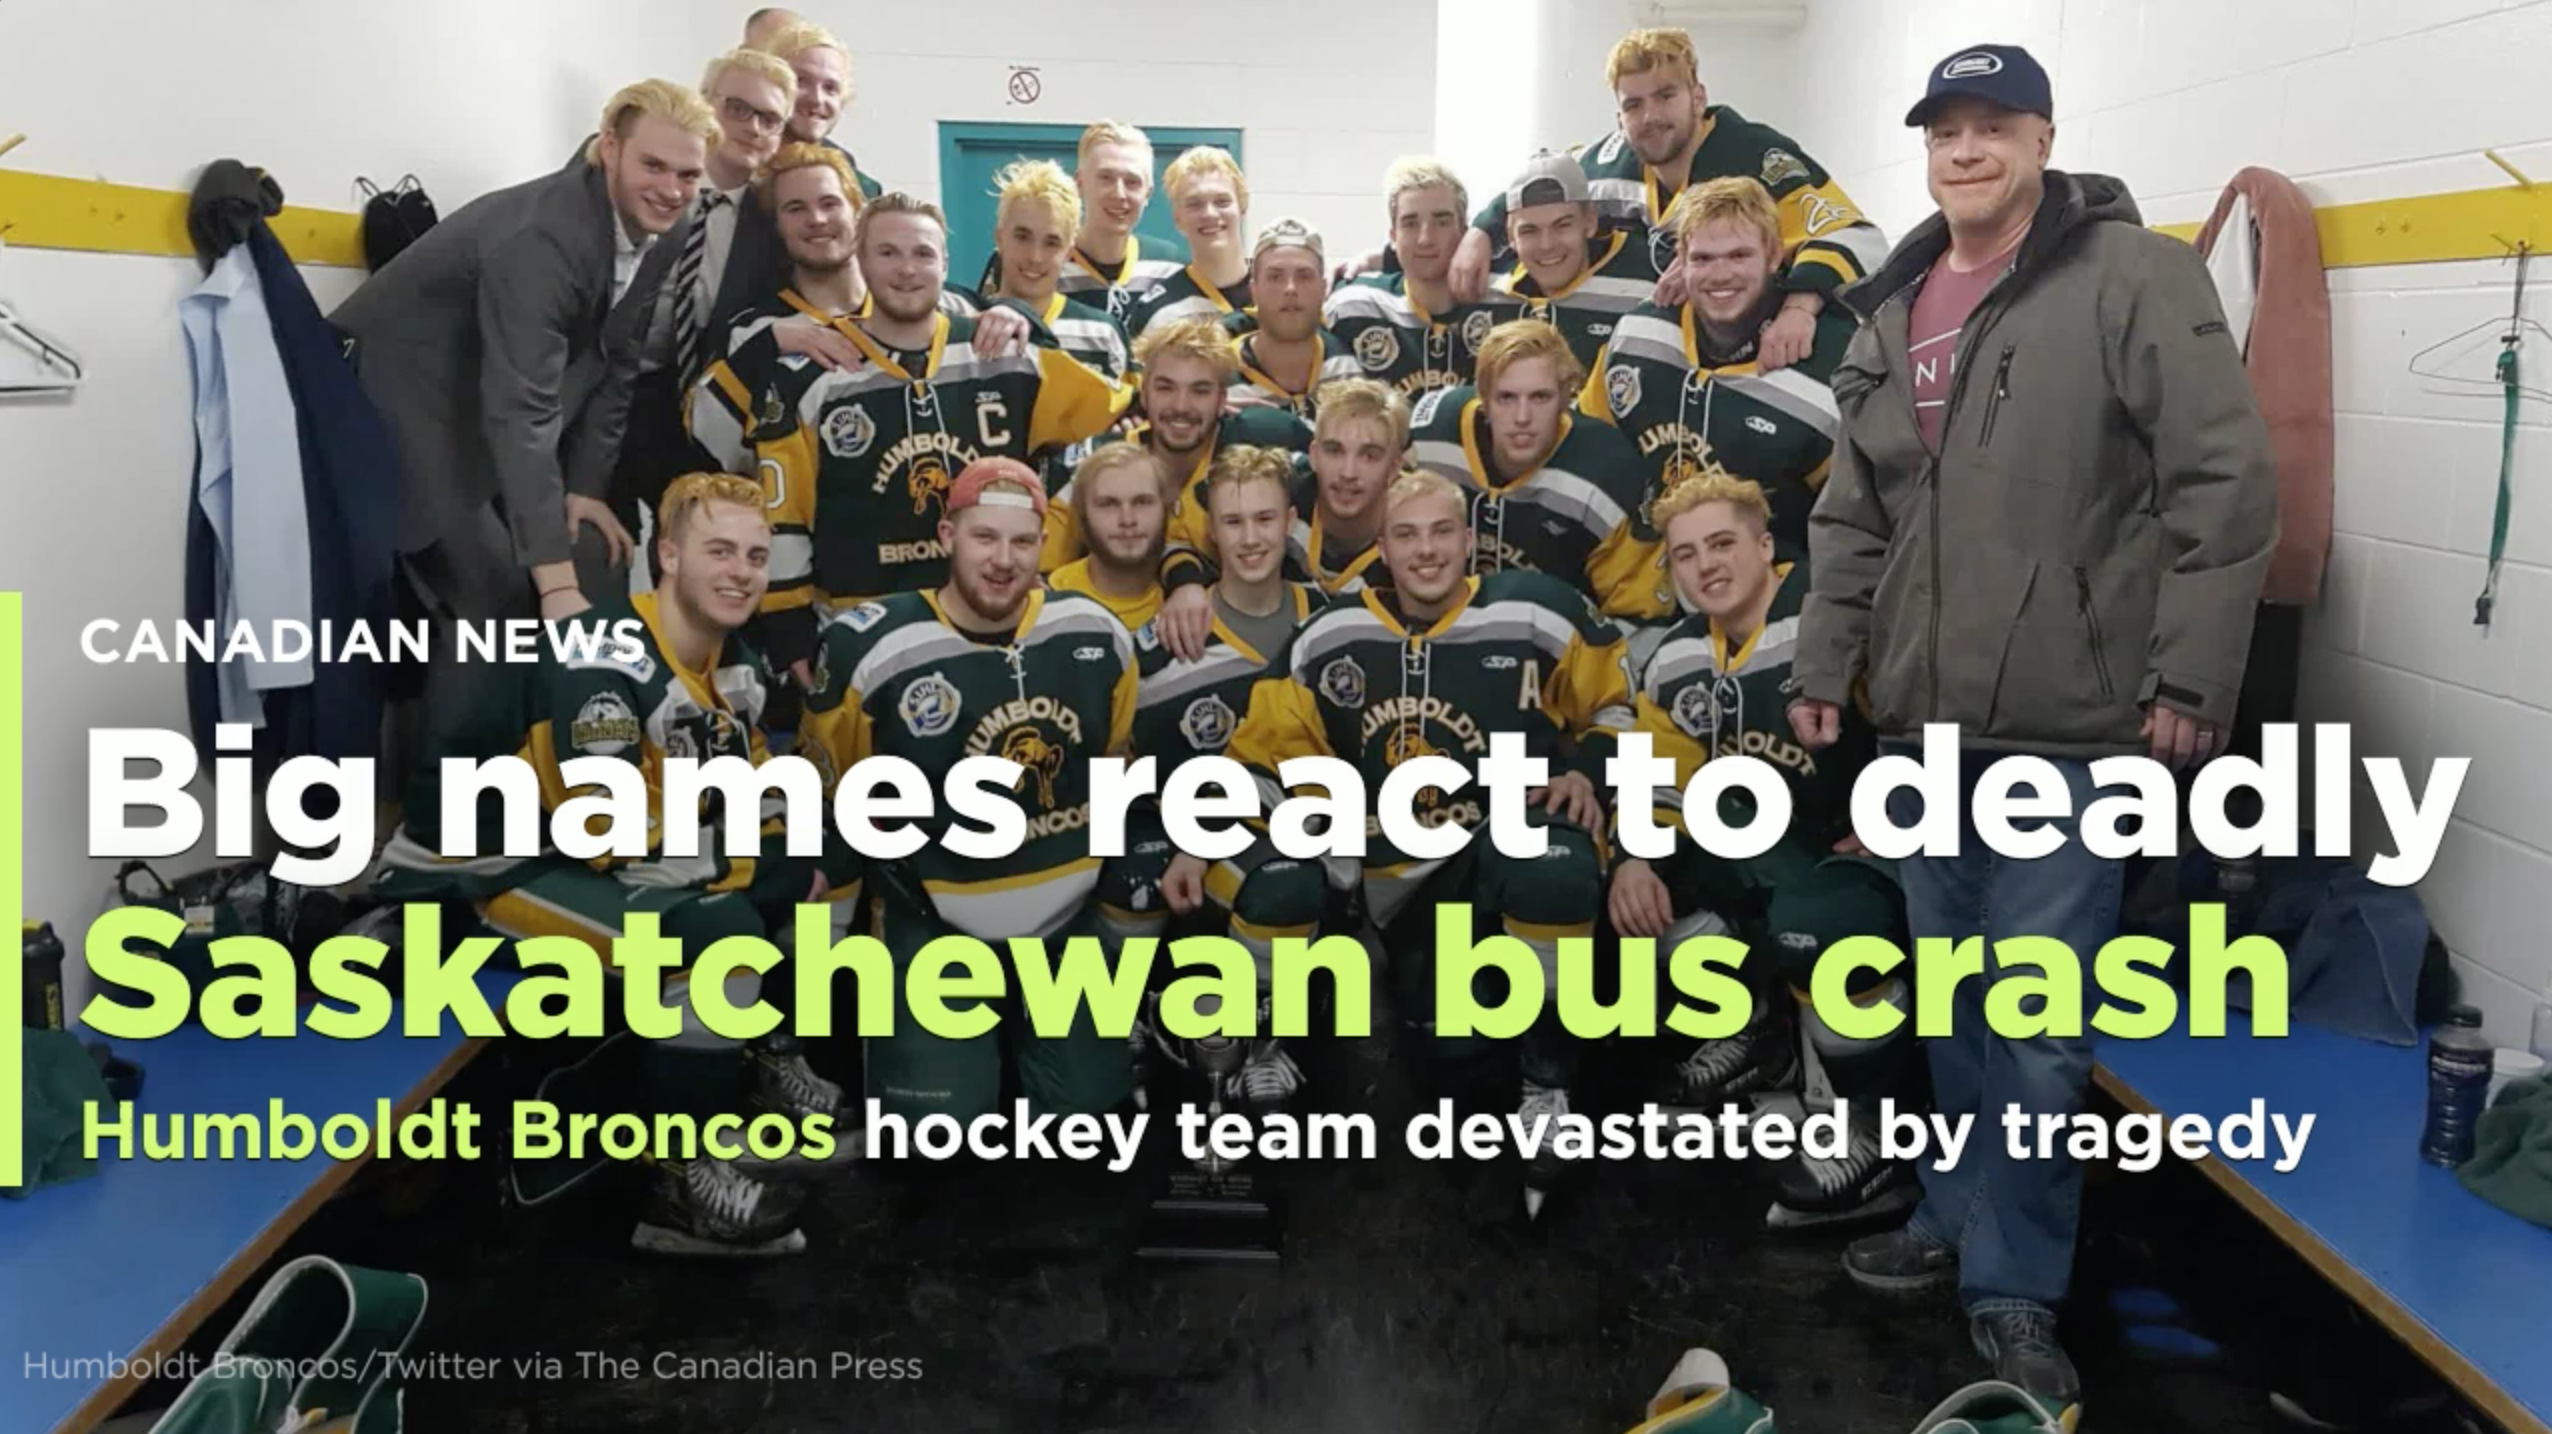 Alberta School Bus Crash Leaves Several Students In Critical Condition